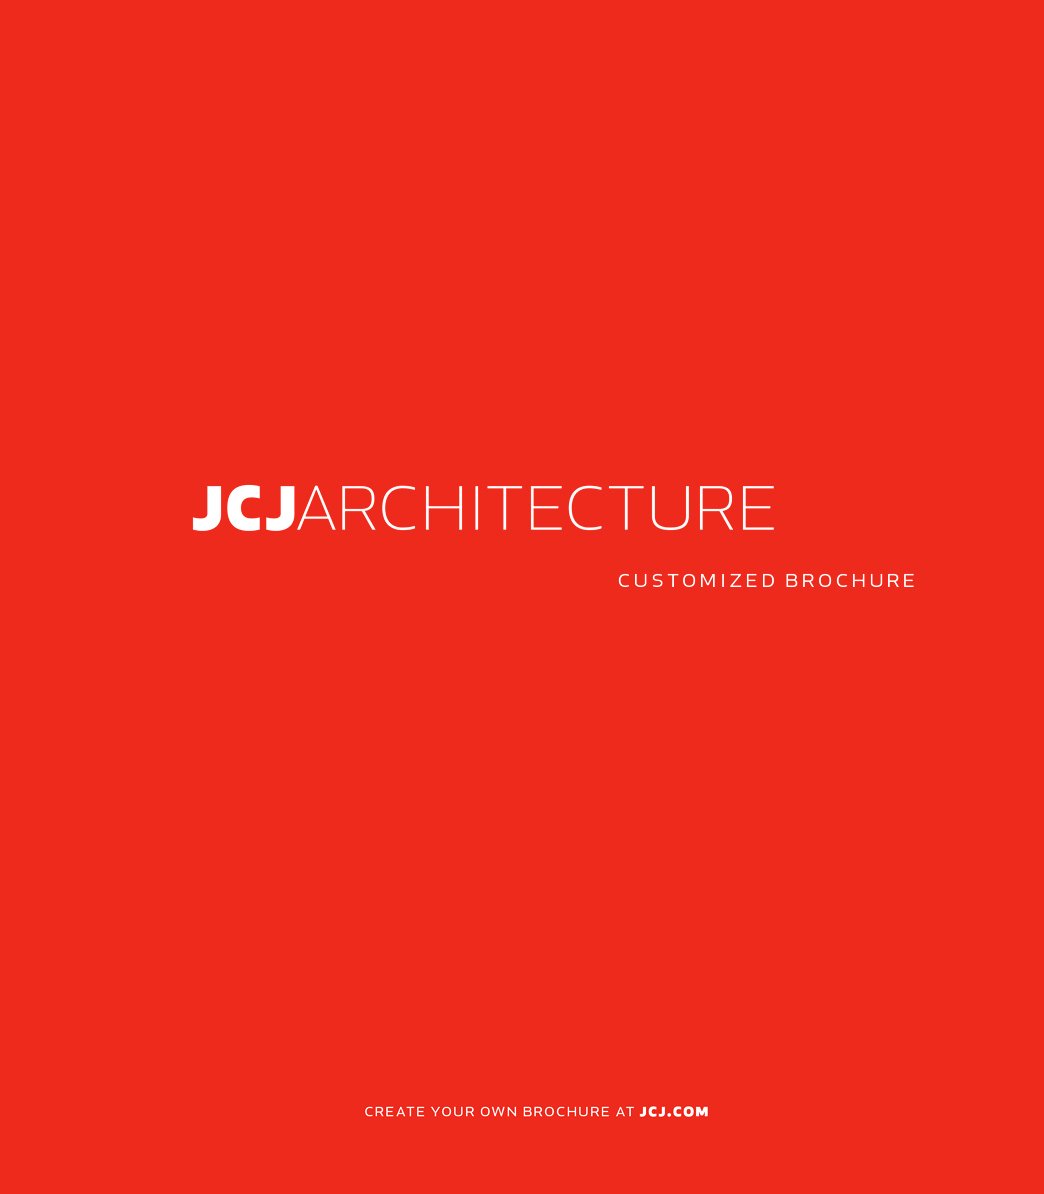 JCJ Architecture Brochure Front Cover